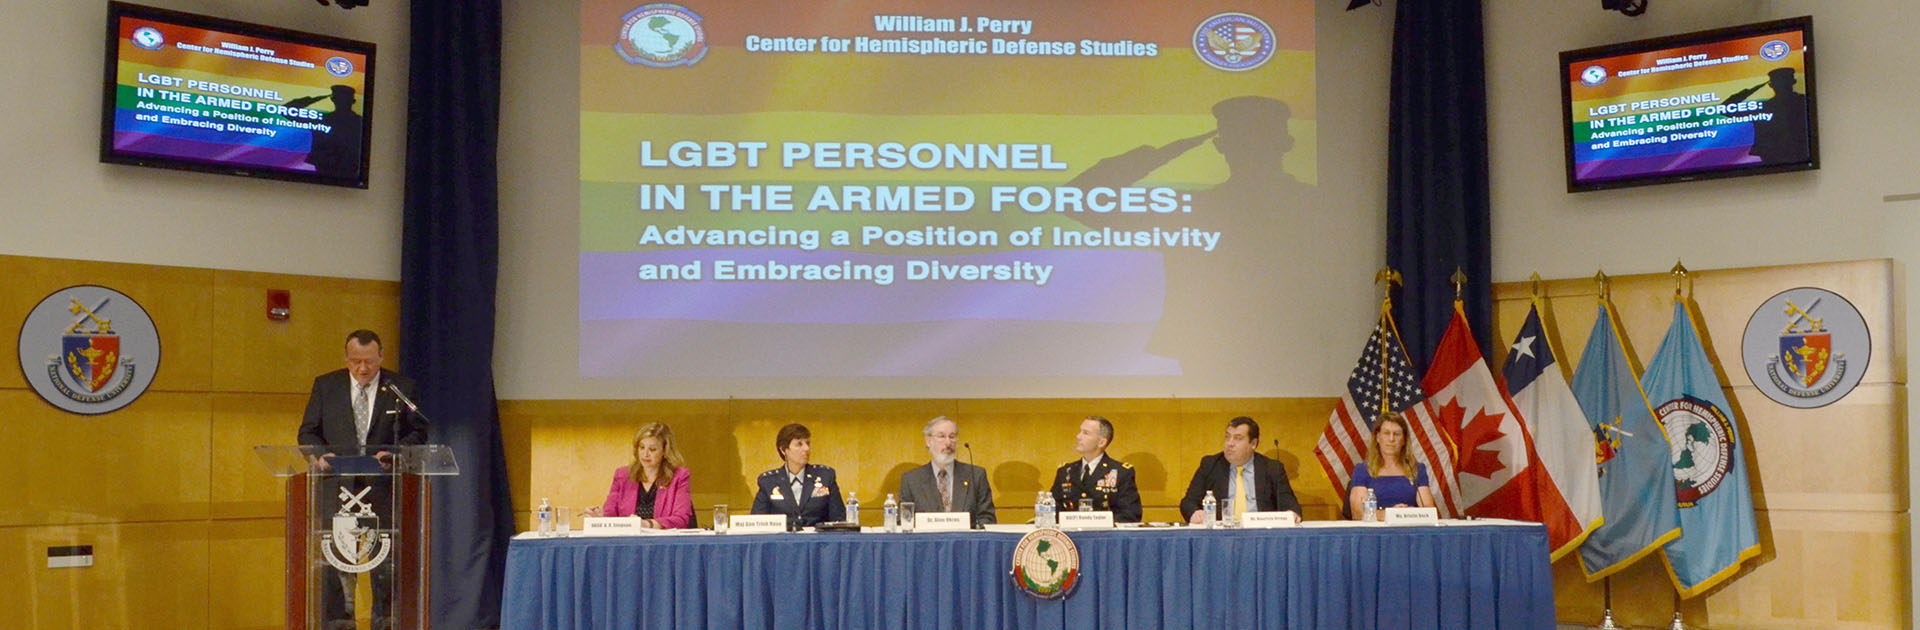 LGBT Personnel in the Armed Forces